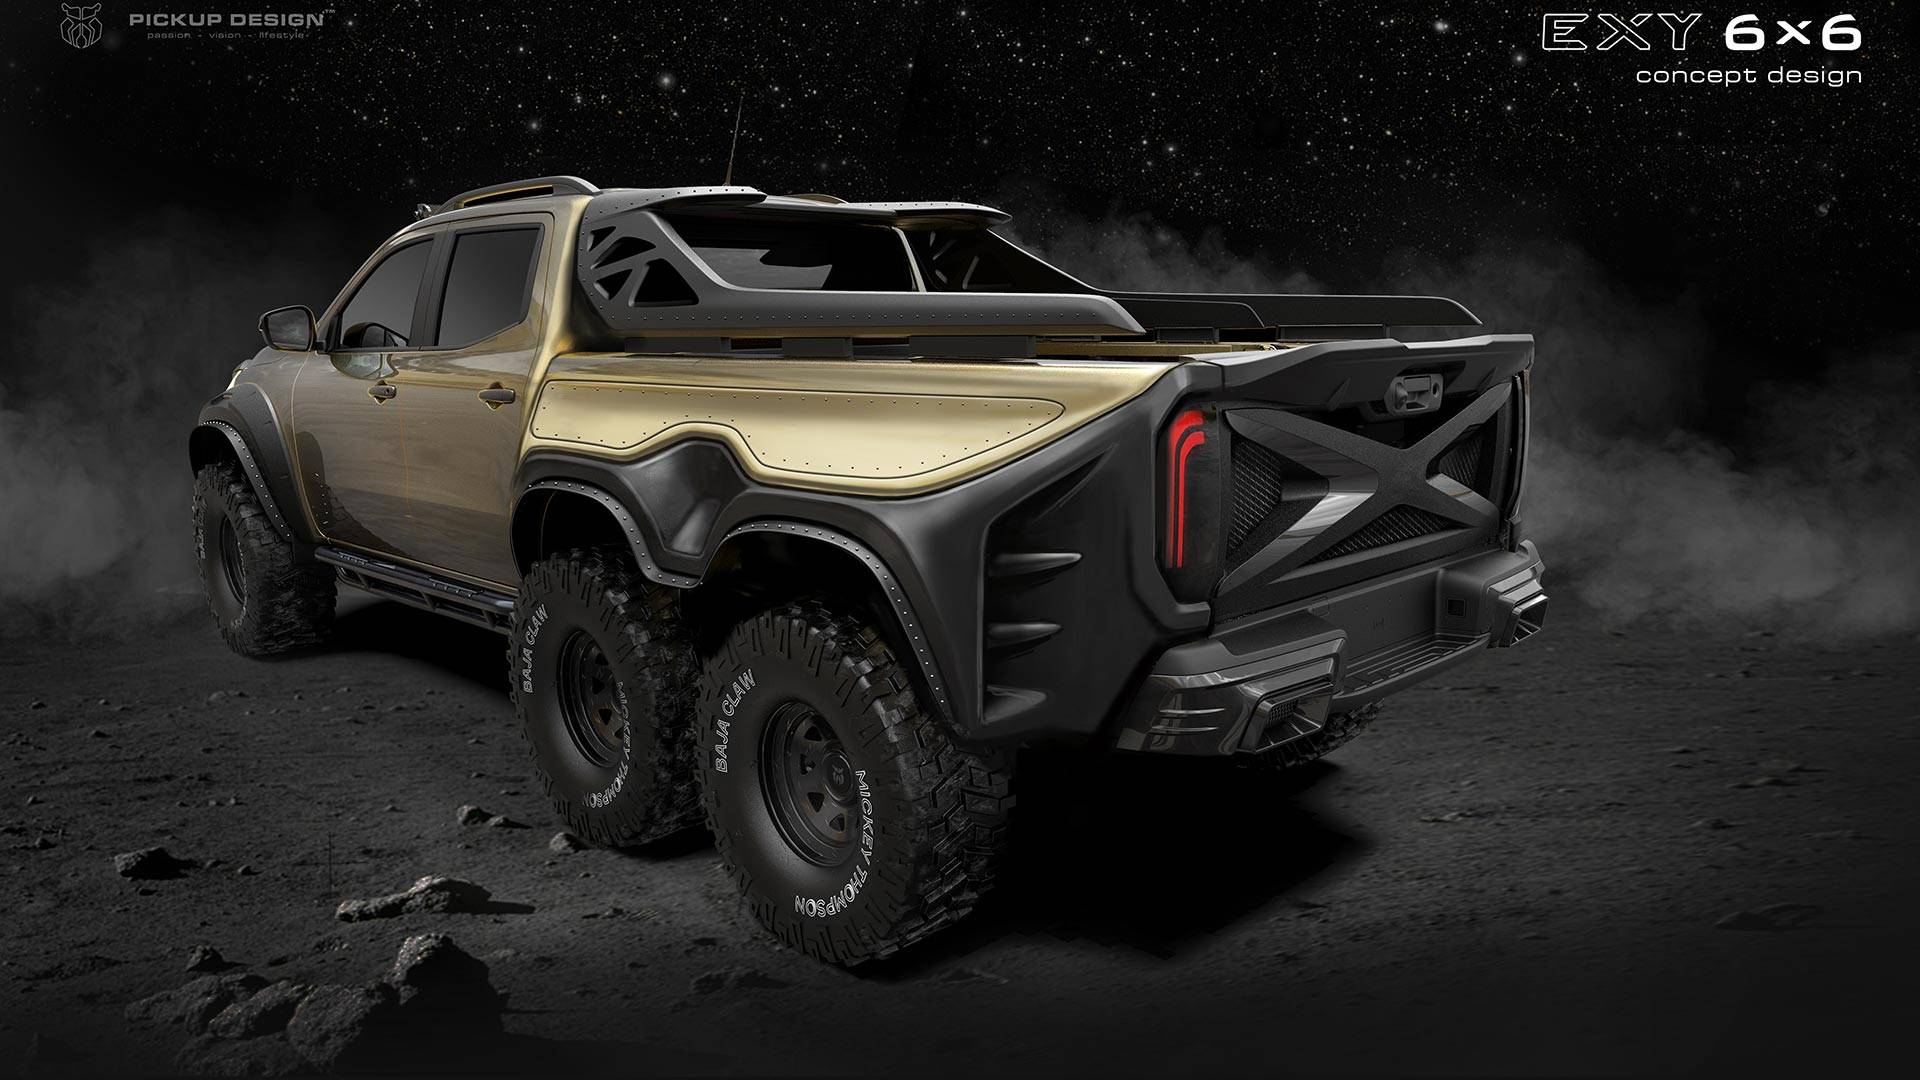 Mercedes 6X6 For Sale >> Amg 6x6 For Sale Best Car News 2019 2020 By Vashonintuitivearts